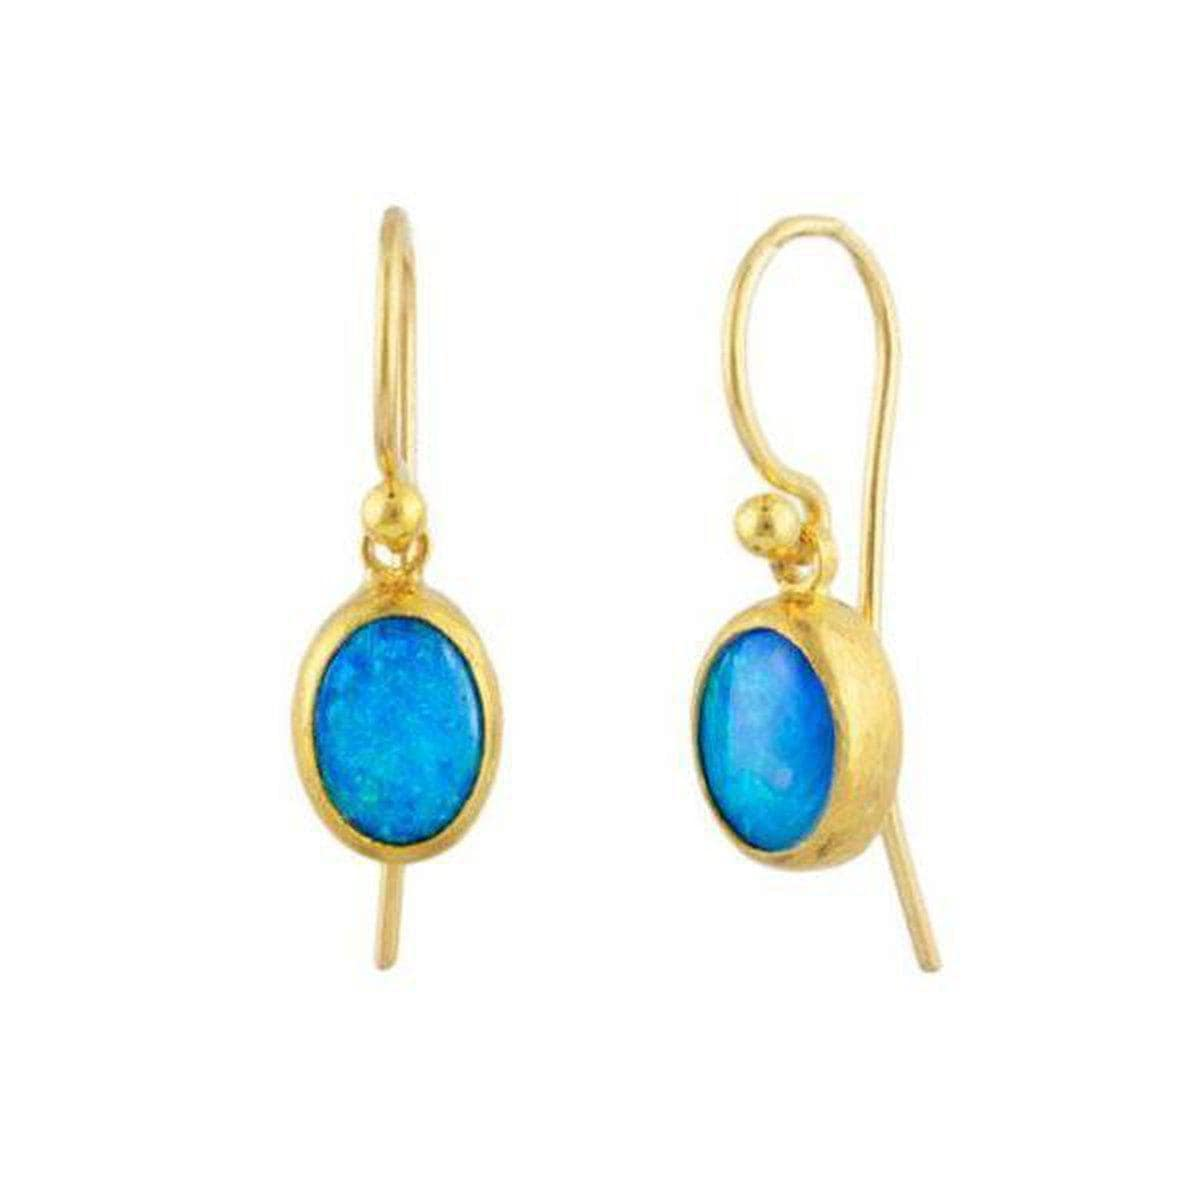 Amulet Hue 24K Gold Opal Earrings - EHSG-AH-OP86-V-GURHAN-Renee Taylor Gallery